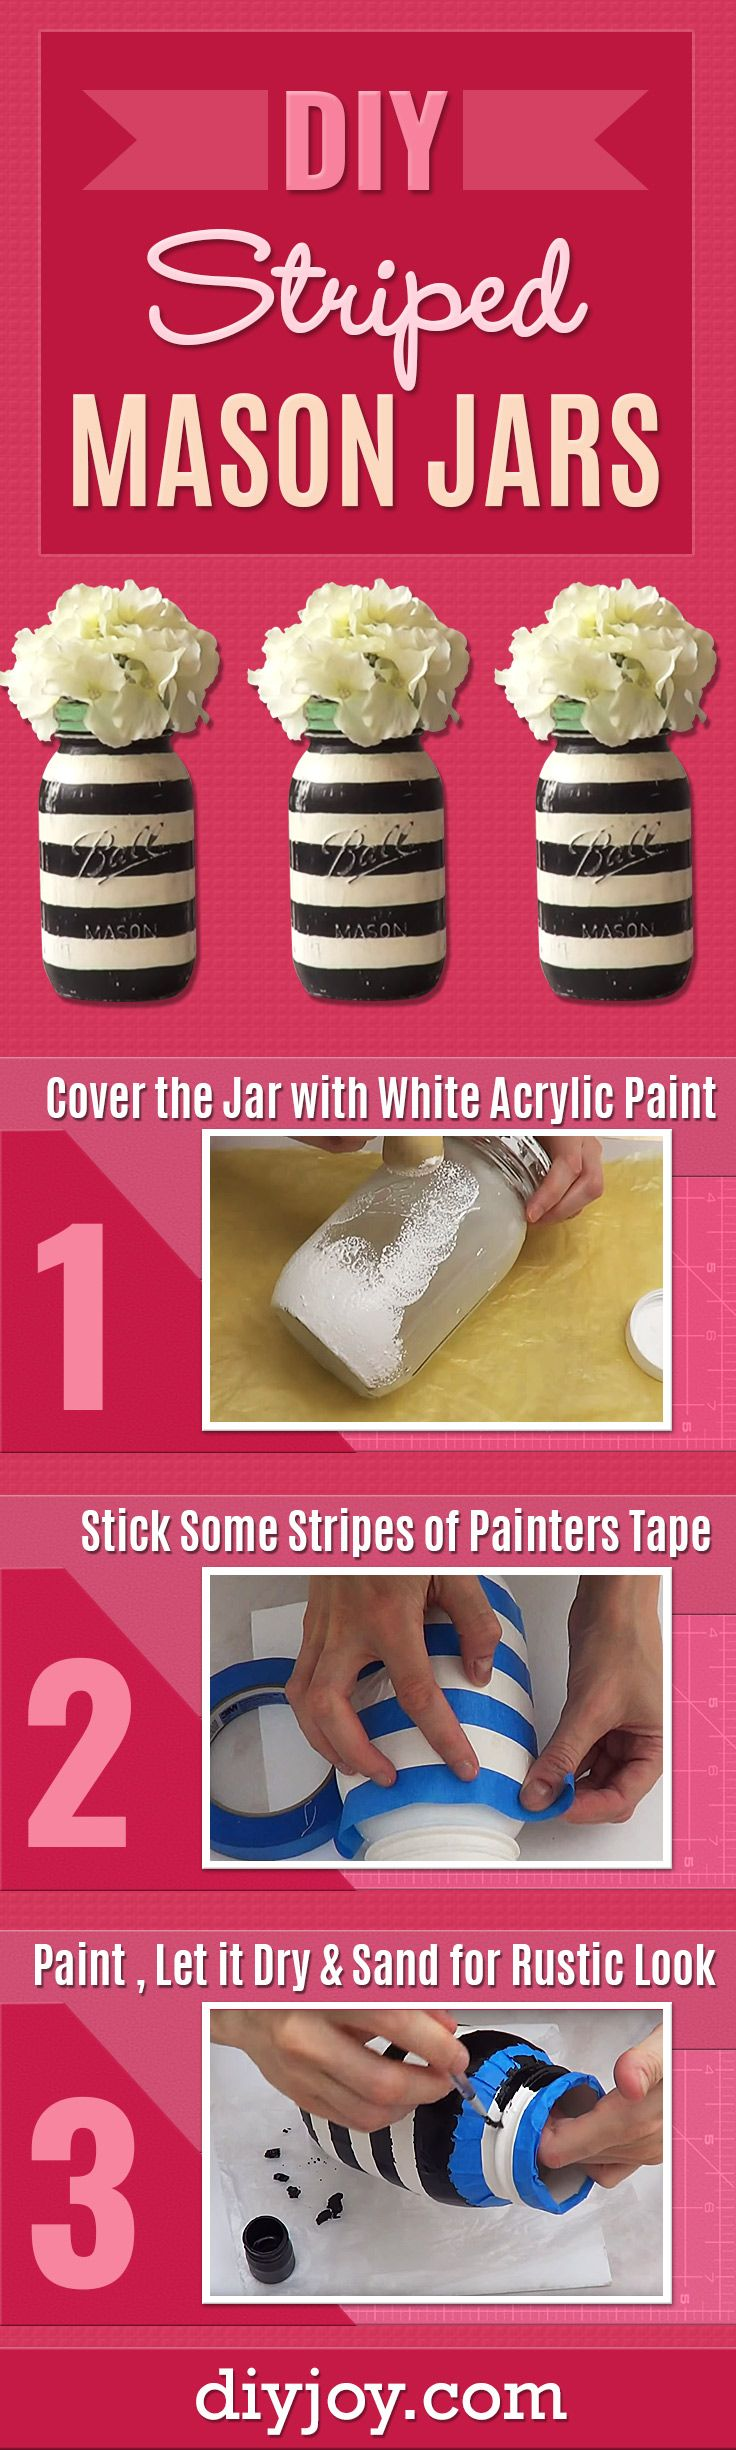 DIY Painted Mason Jars With Stripes - Easy Striped Mason Jars Make Cheap and Easy Home Decor - Creative DIY Projects and Crafts With Mason Jar